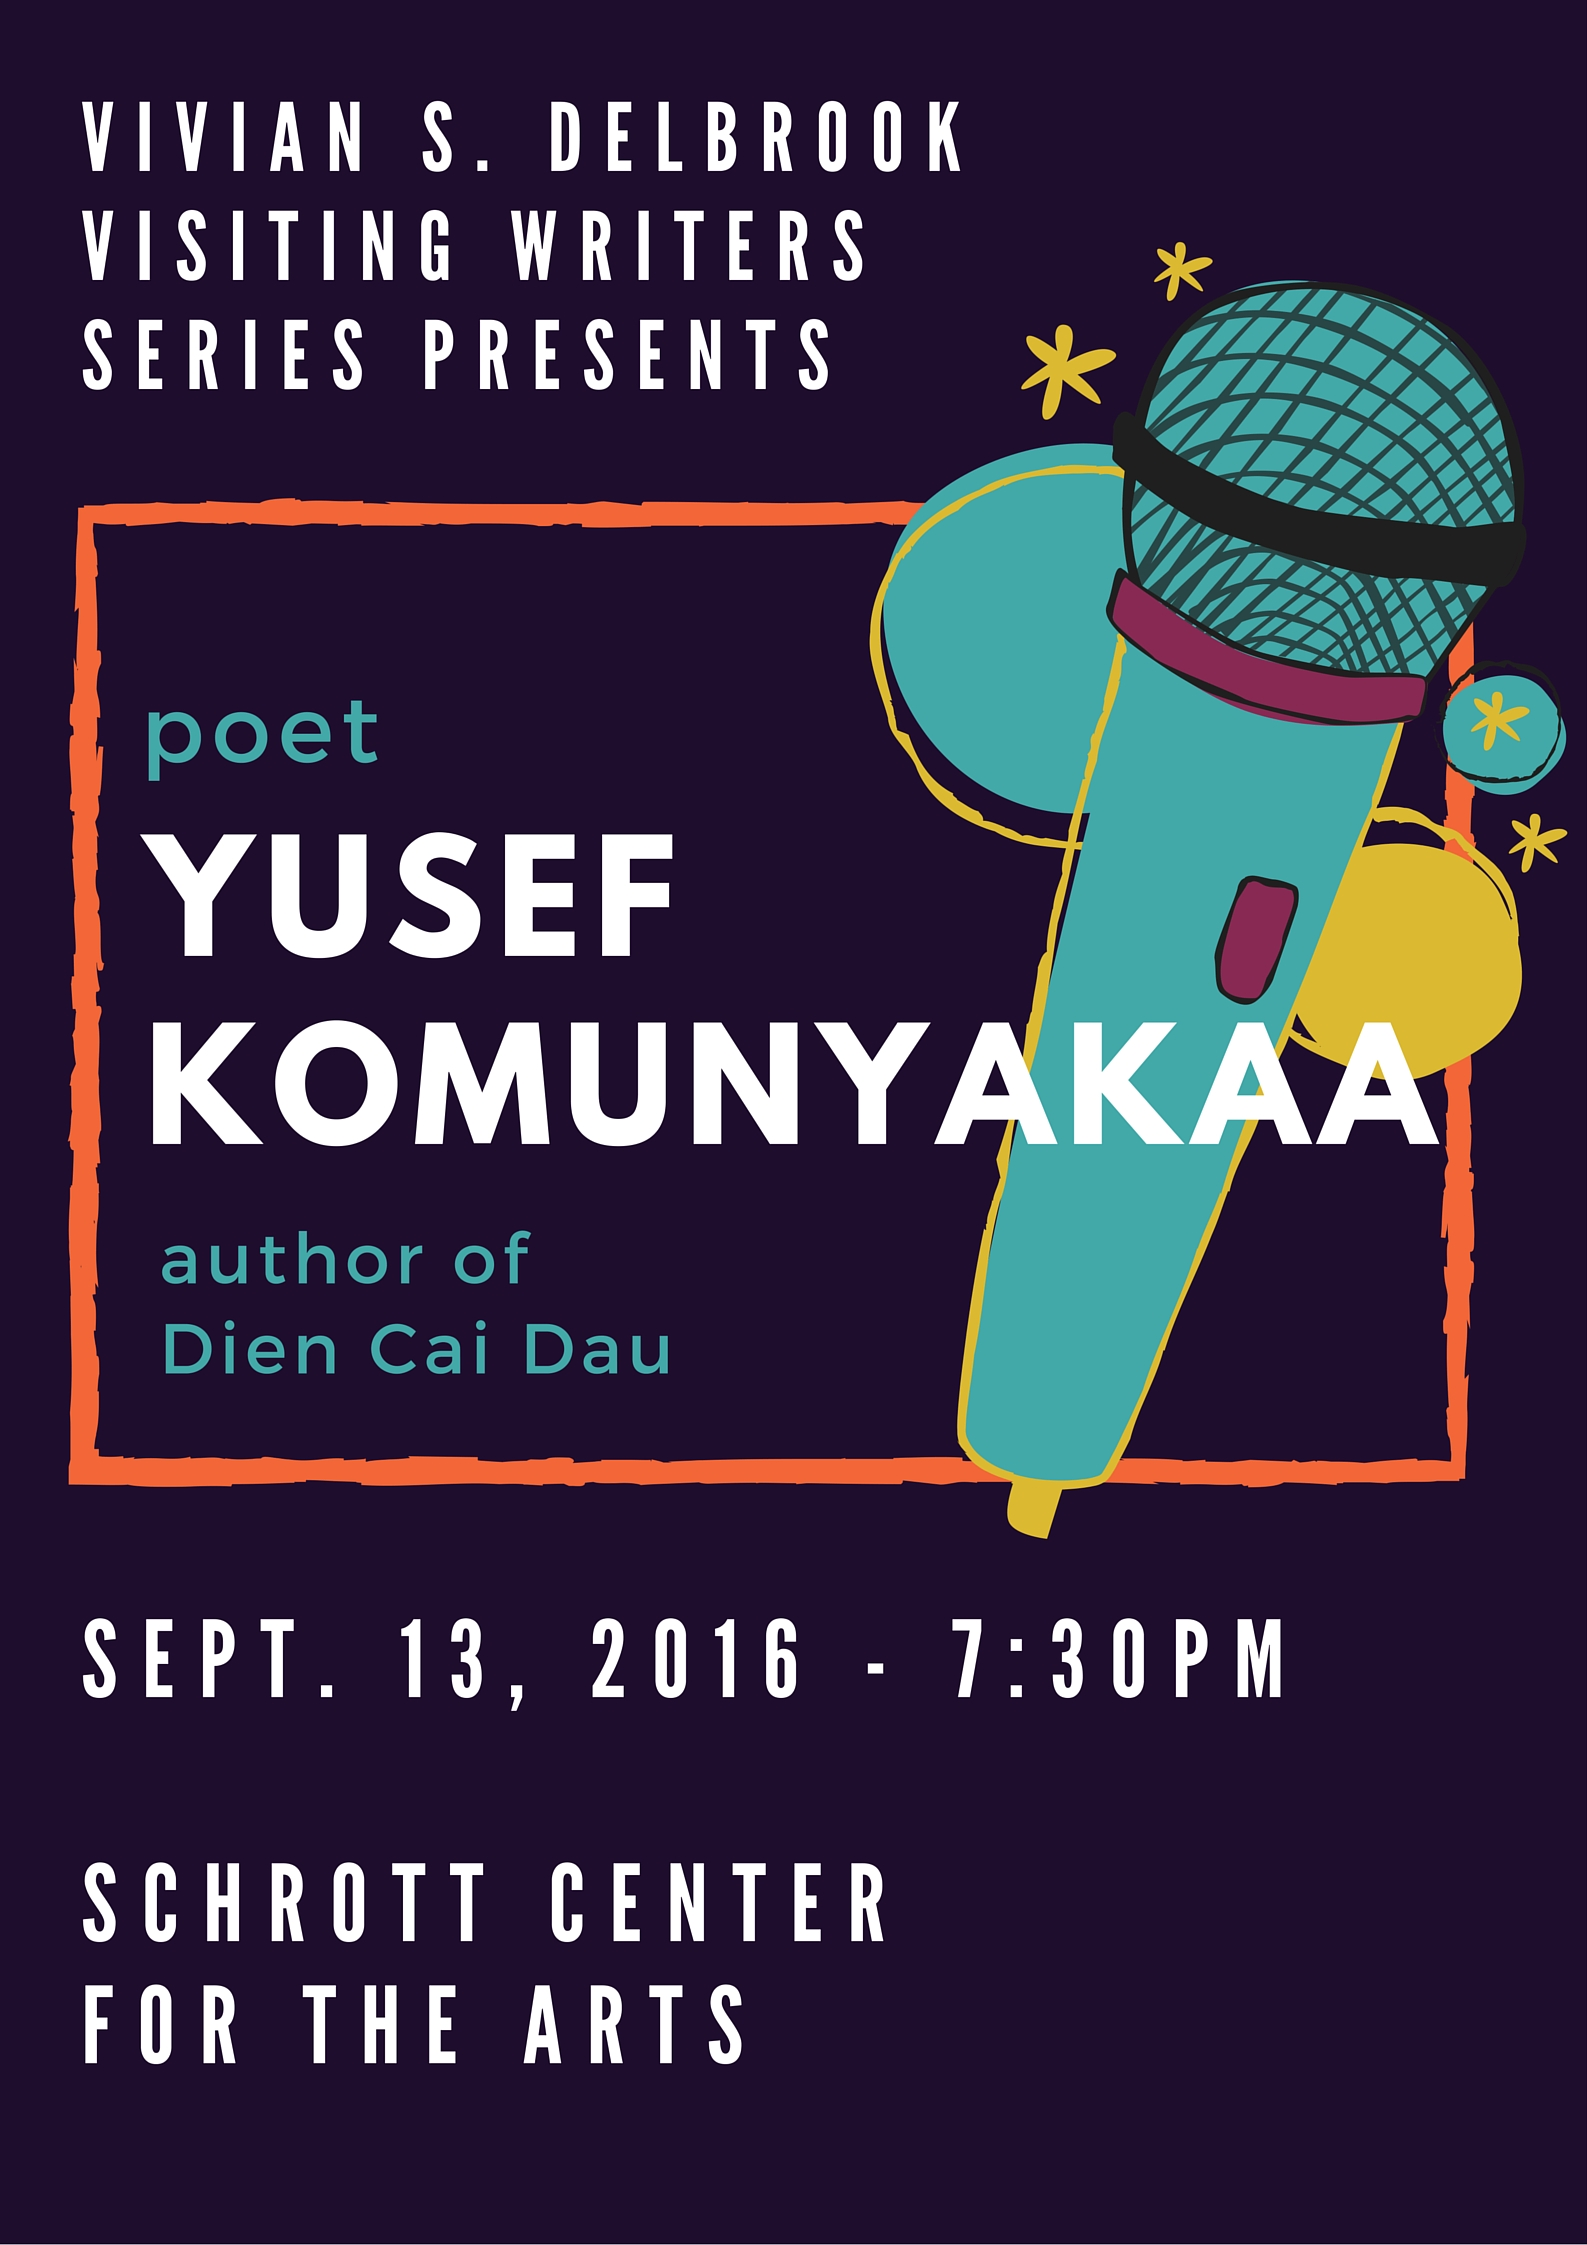 Poet Yusef Komunyakaa, author of Dien Cai Dau, will be at the Schrott Center for the Arts on September 13, 2016, at 7:30pm.